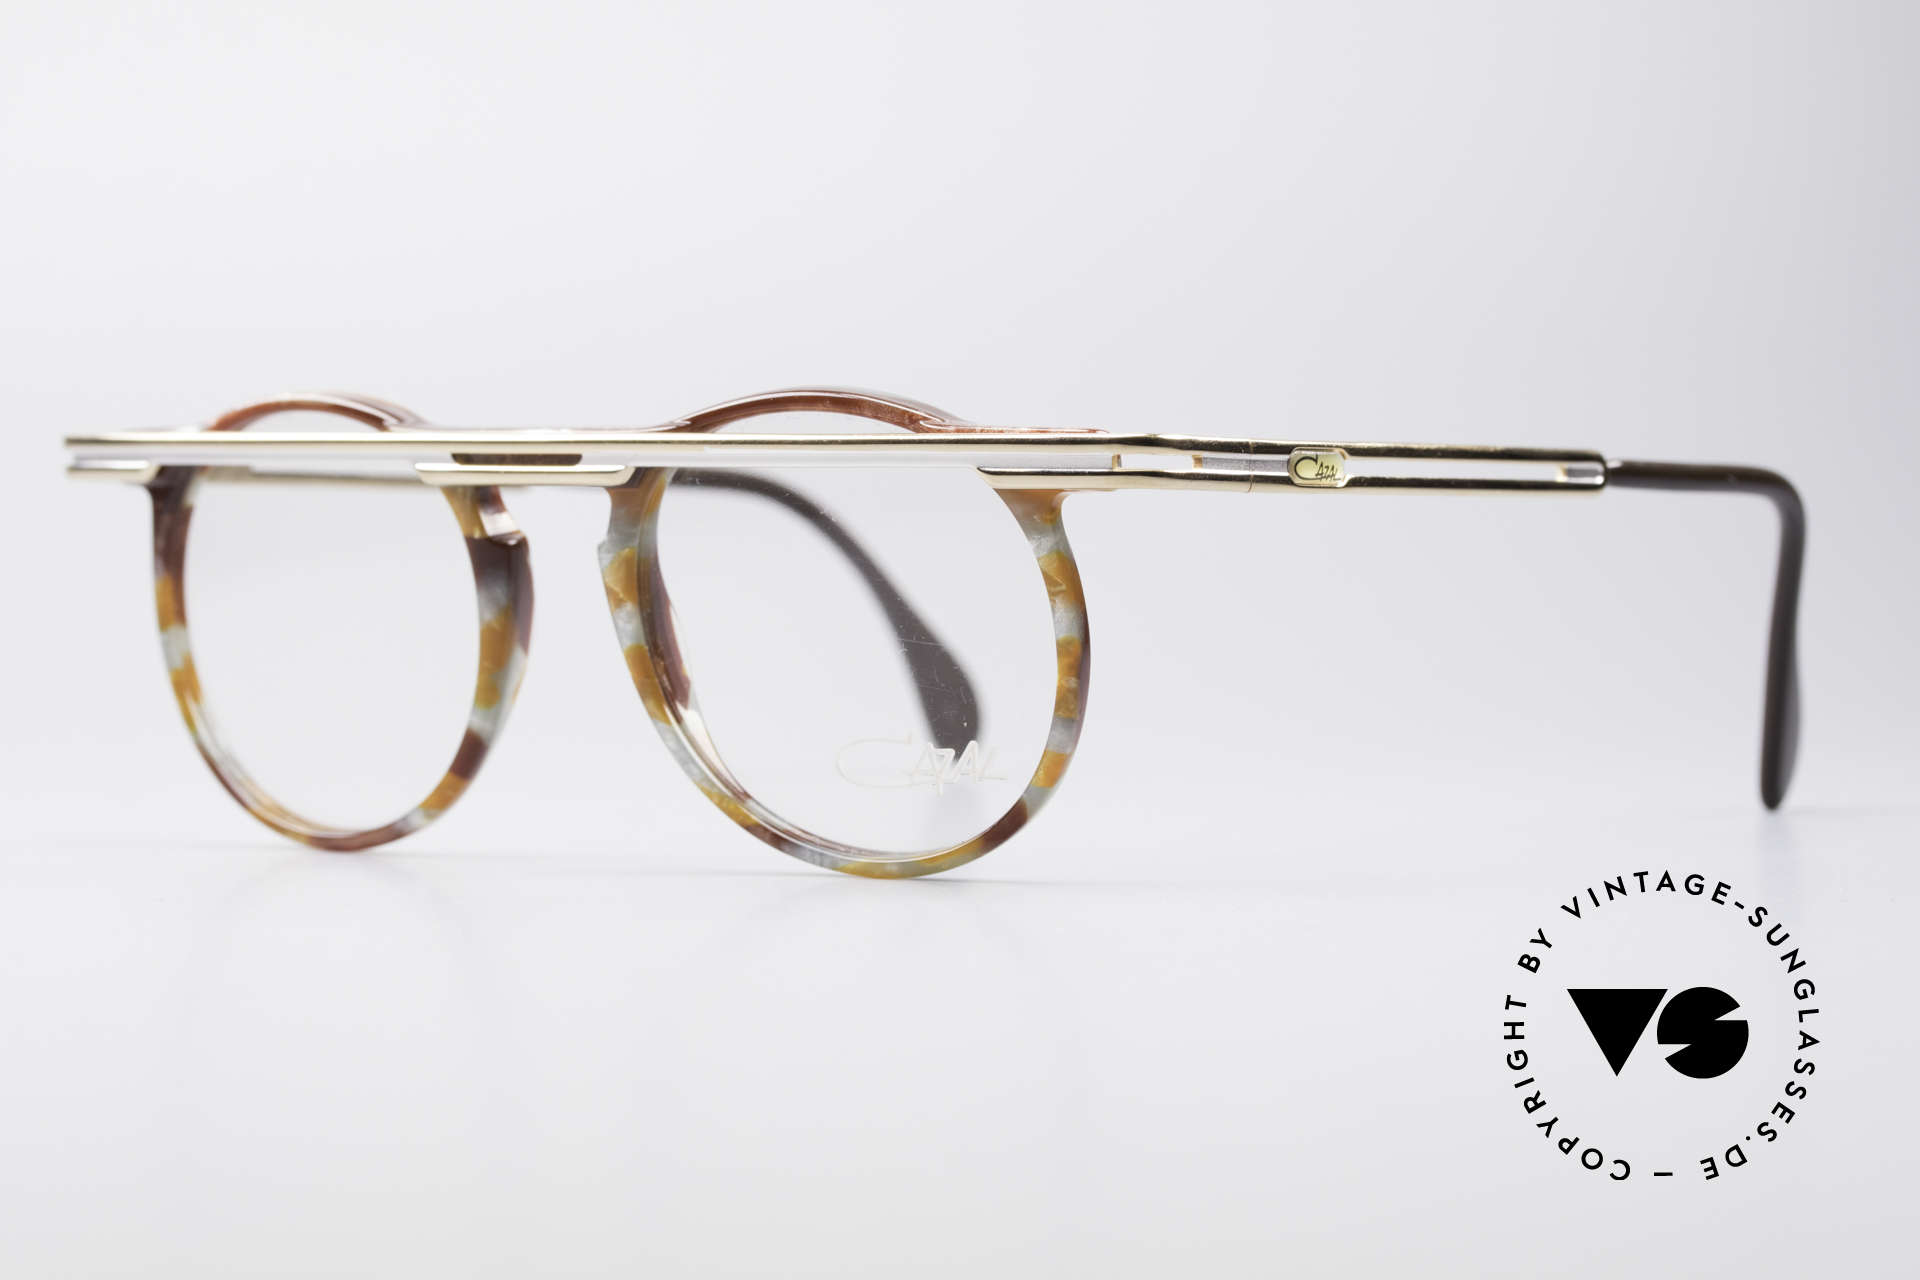 Cazal 648 90's Cari Zalloni Vintage Glasses, extroverted frame construction with unique coloring, Made for Men and Women